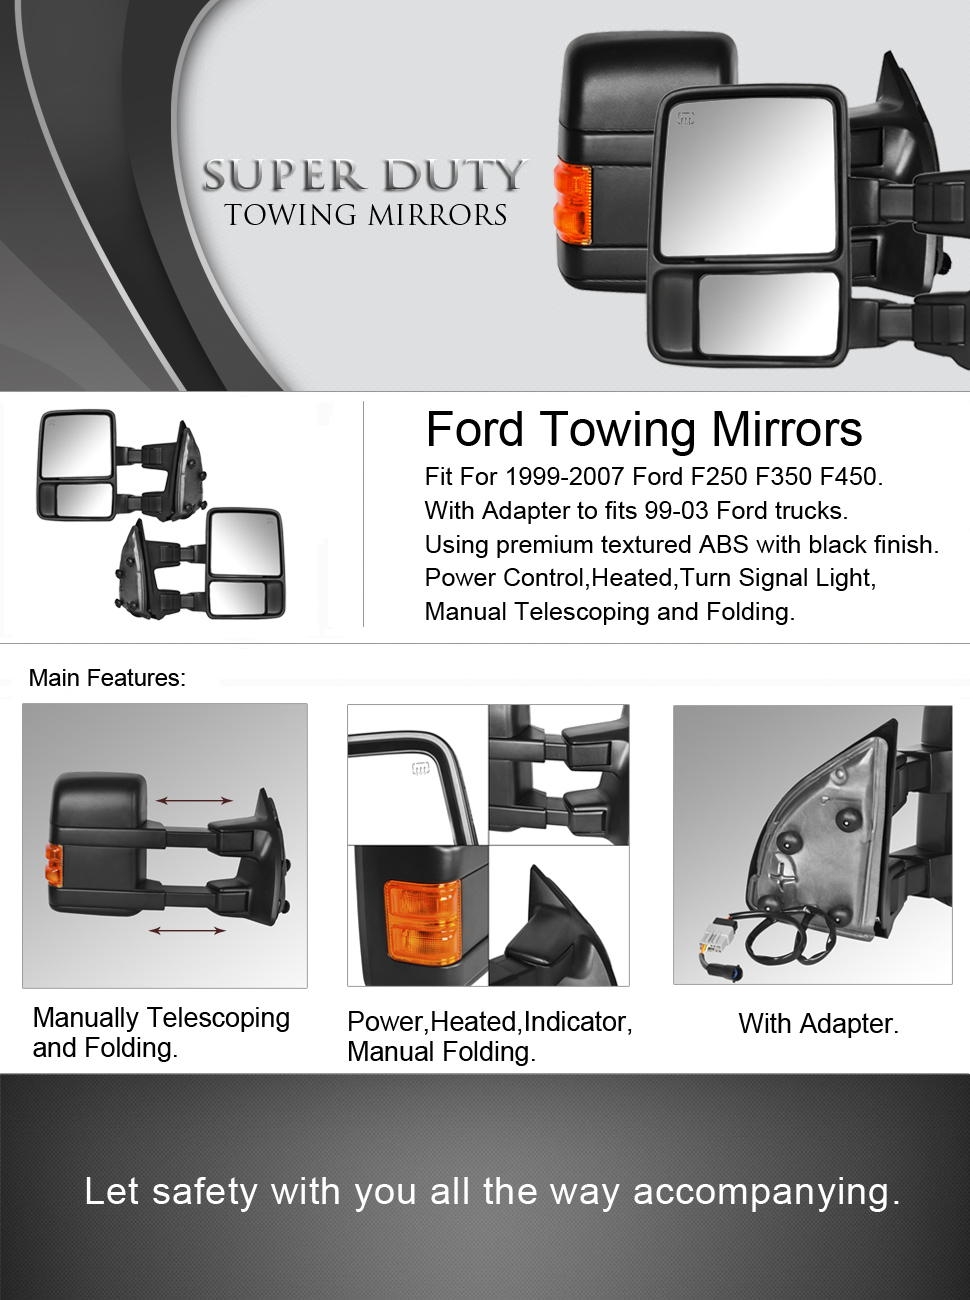 3e4EMyExQyWq._UX970_TTW_ amazon com dedc ford towing mirrors f250 ford tow mirrors f350 Dodge Truck Leather at crackthecode.co